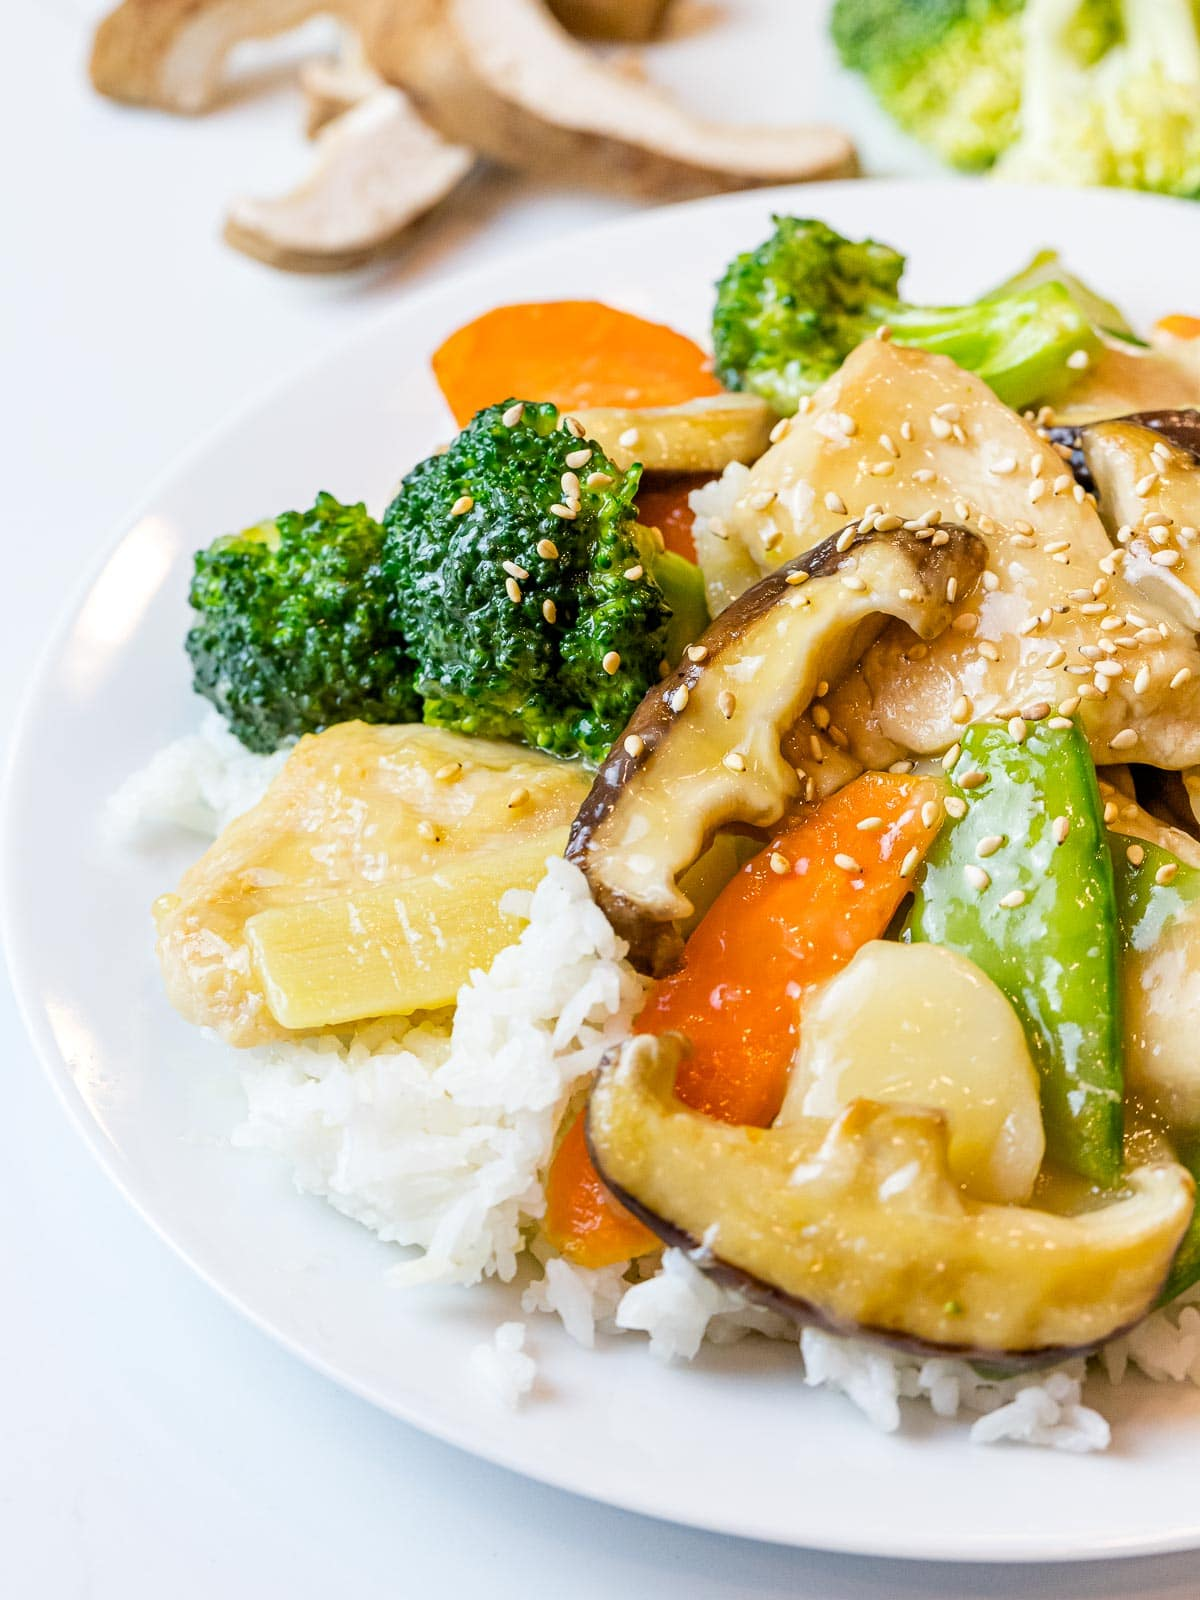 Chinese moo goo gai pan stir fry on a plate of white rice